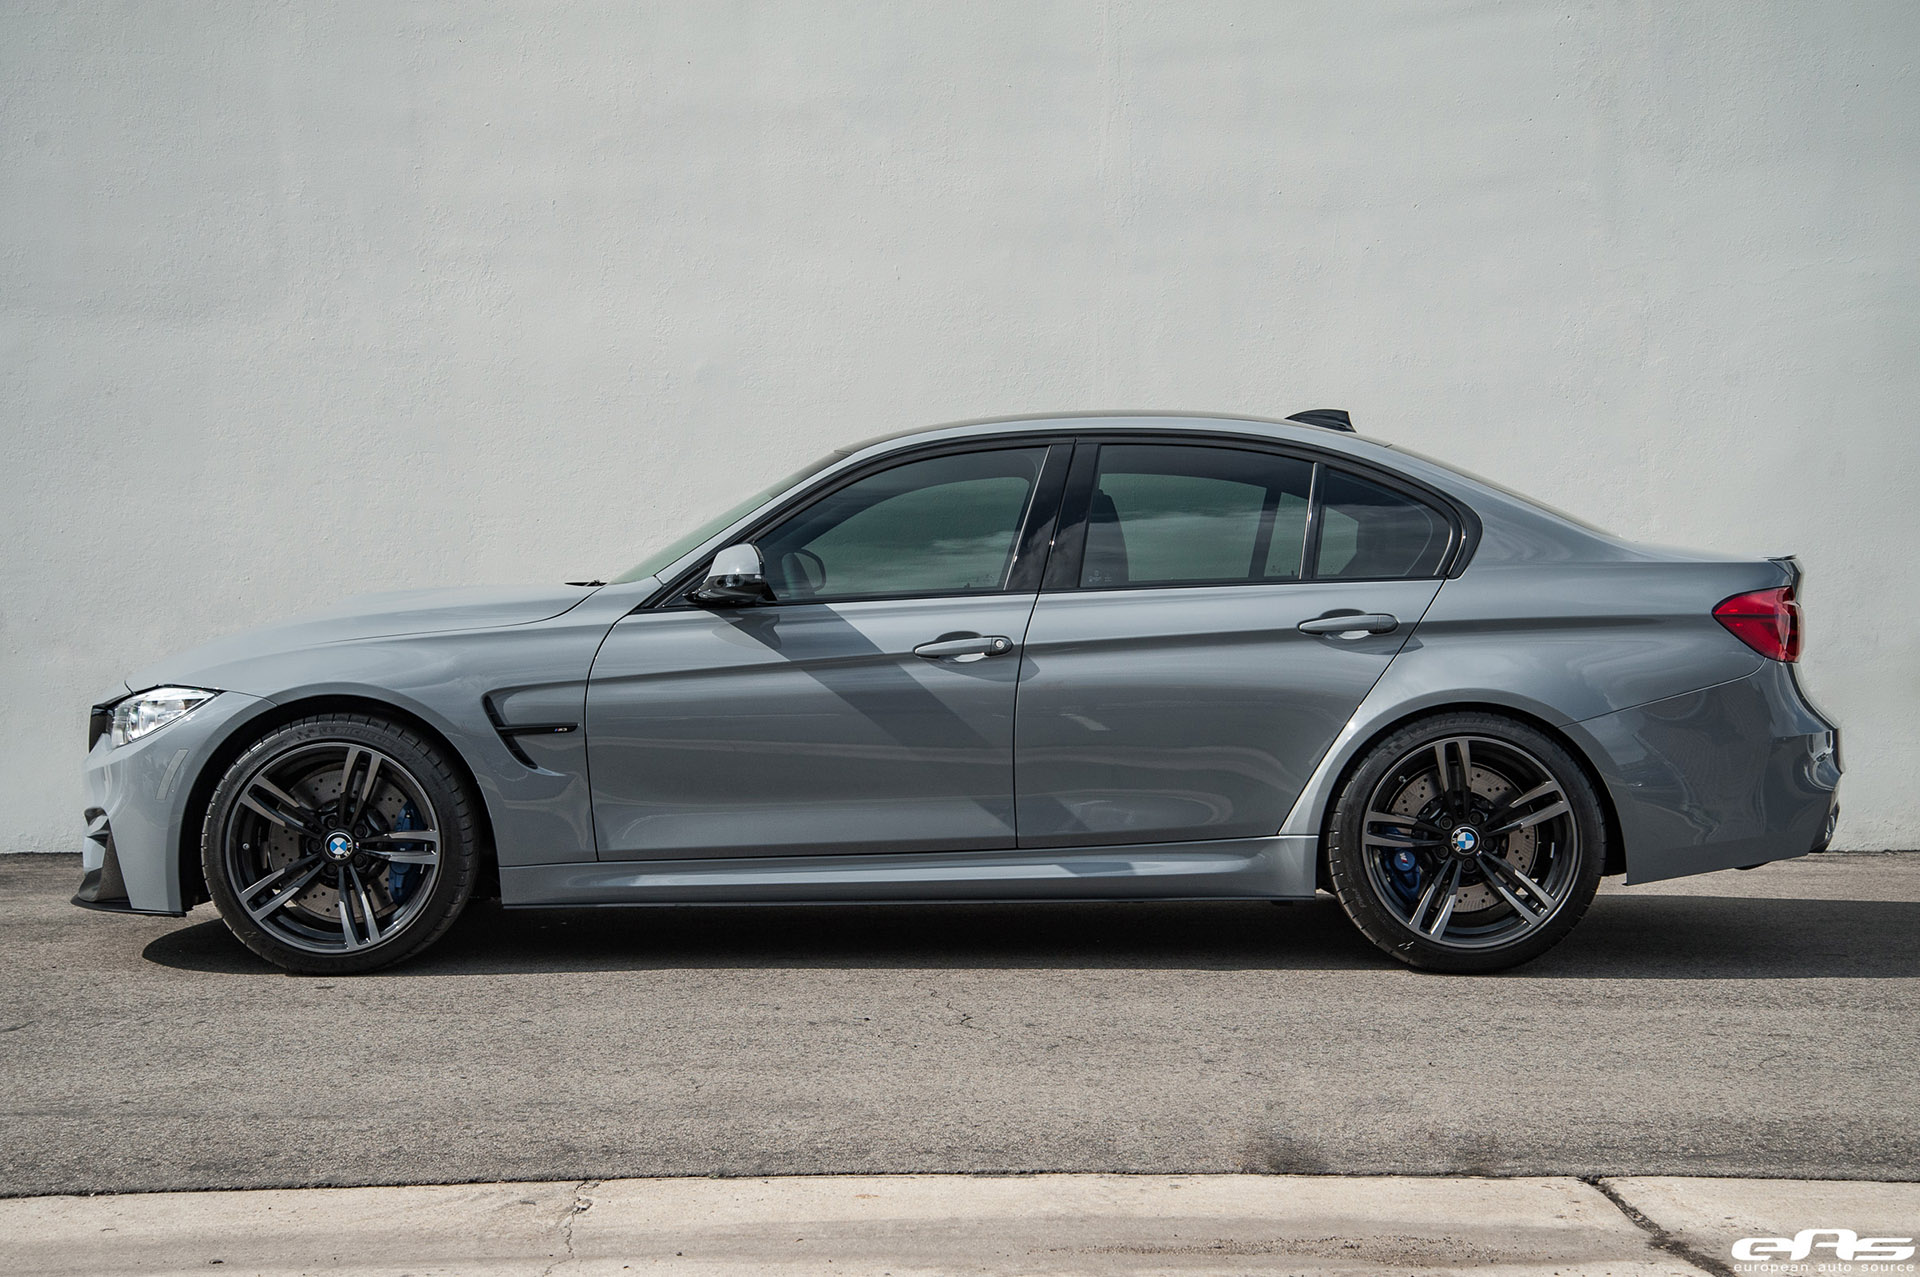 Nardo-Gray-BMW-F80-M3-Gets-Aftermarket-Upgrades-2 (1)